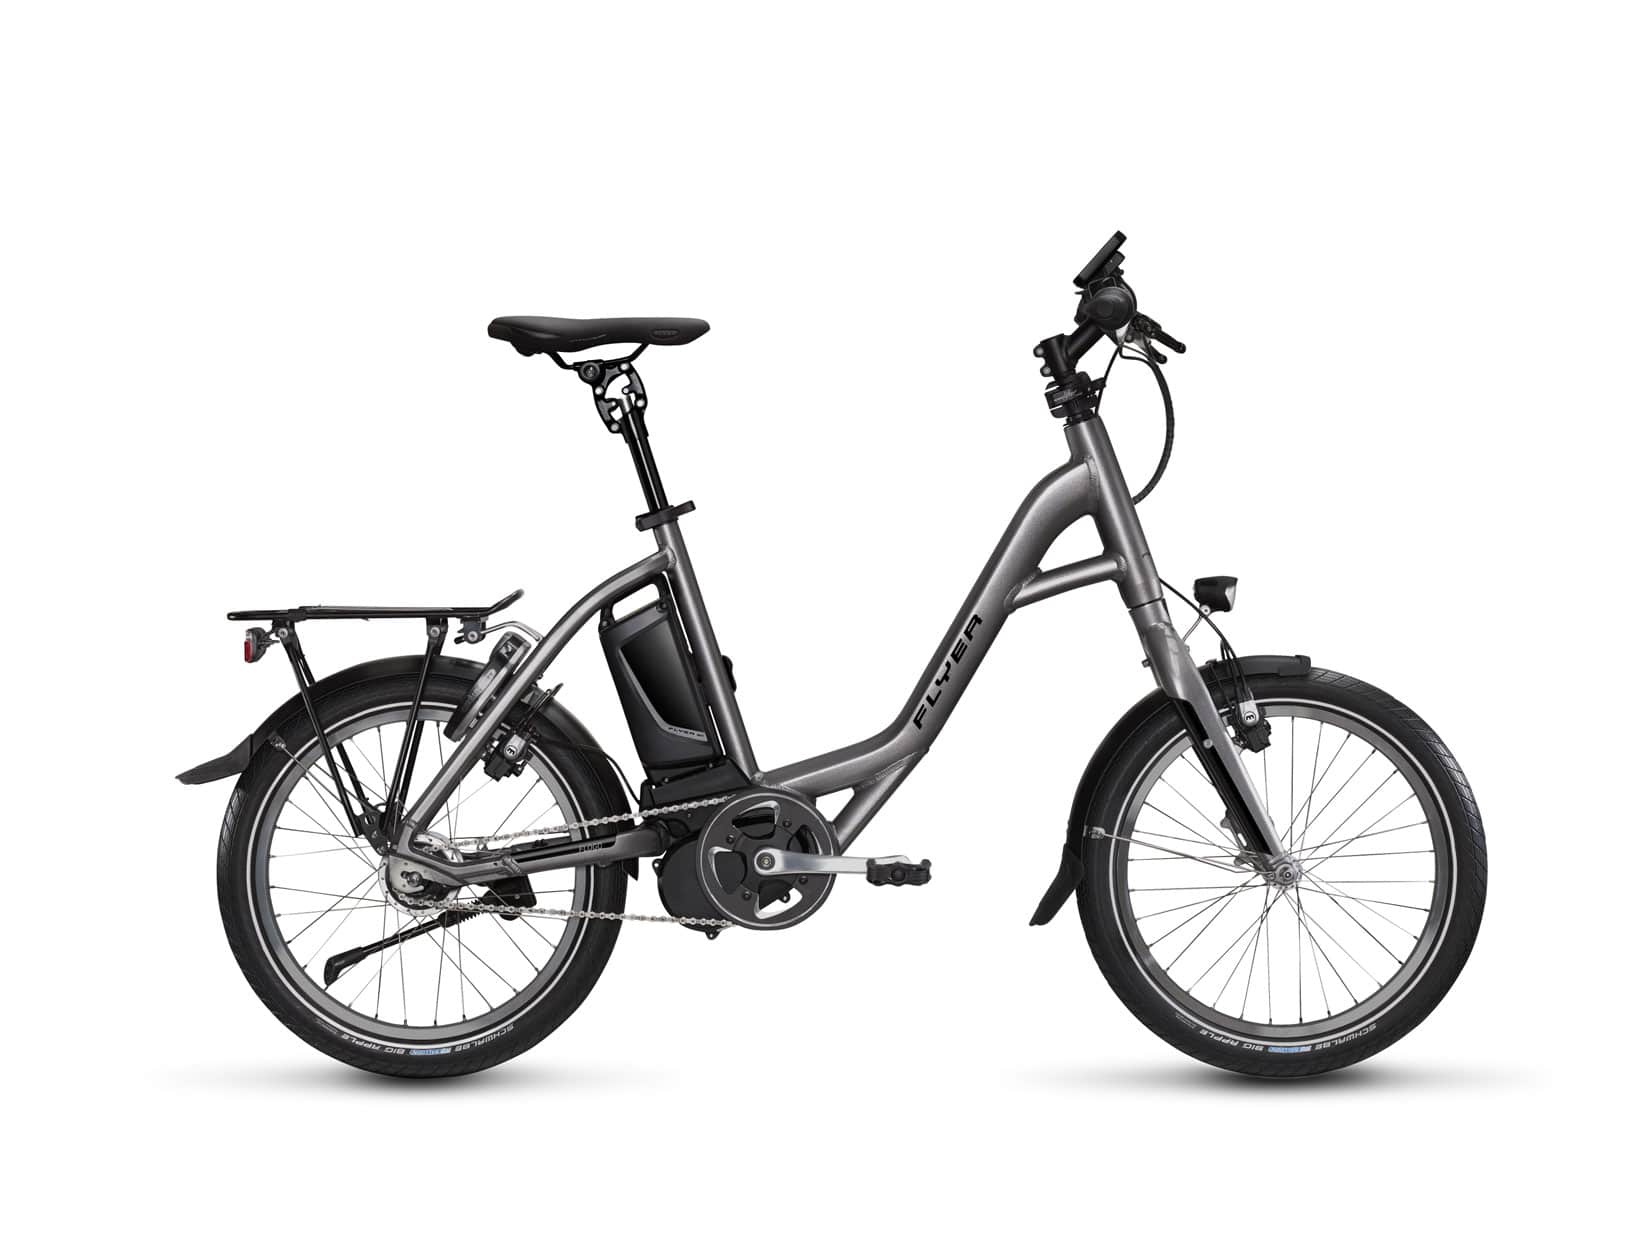 kompakt durch stadt und land flyer flogo im test ebike. Black Bedroom Furniture Sets. Home Design Ideas